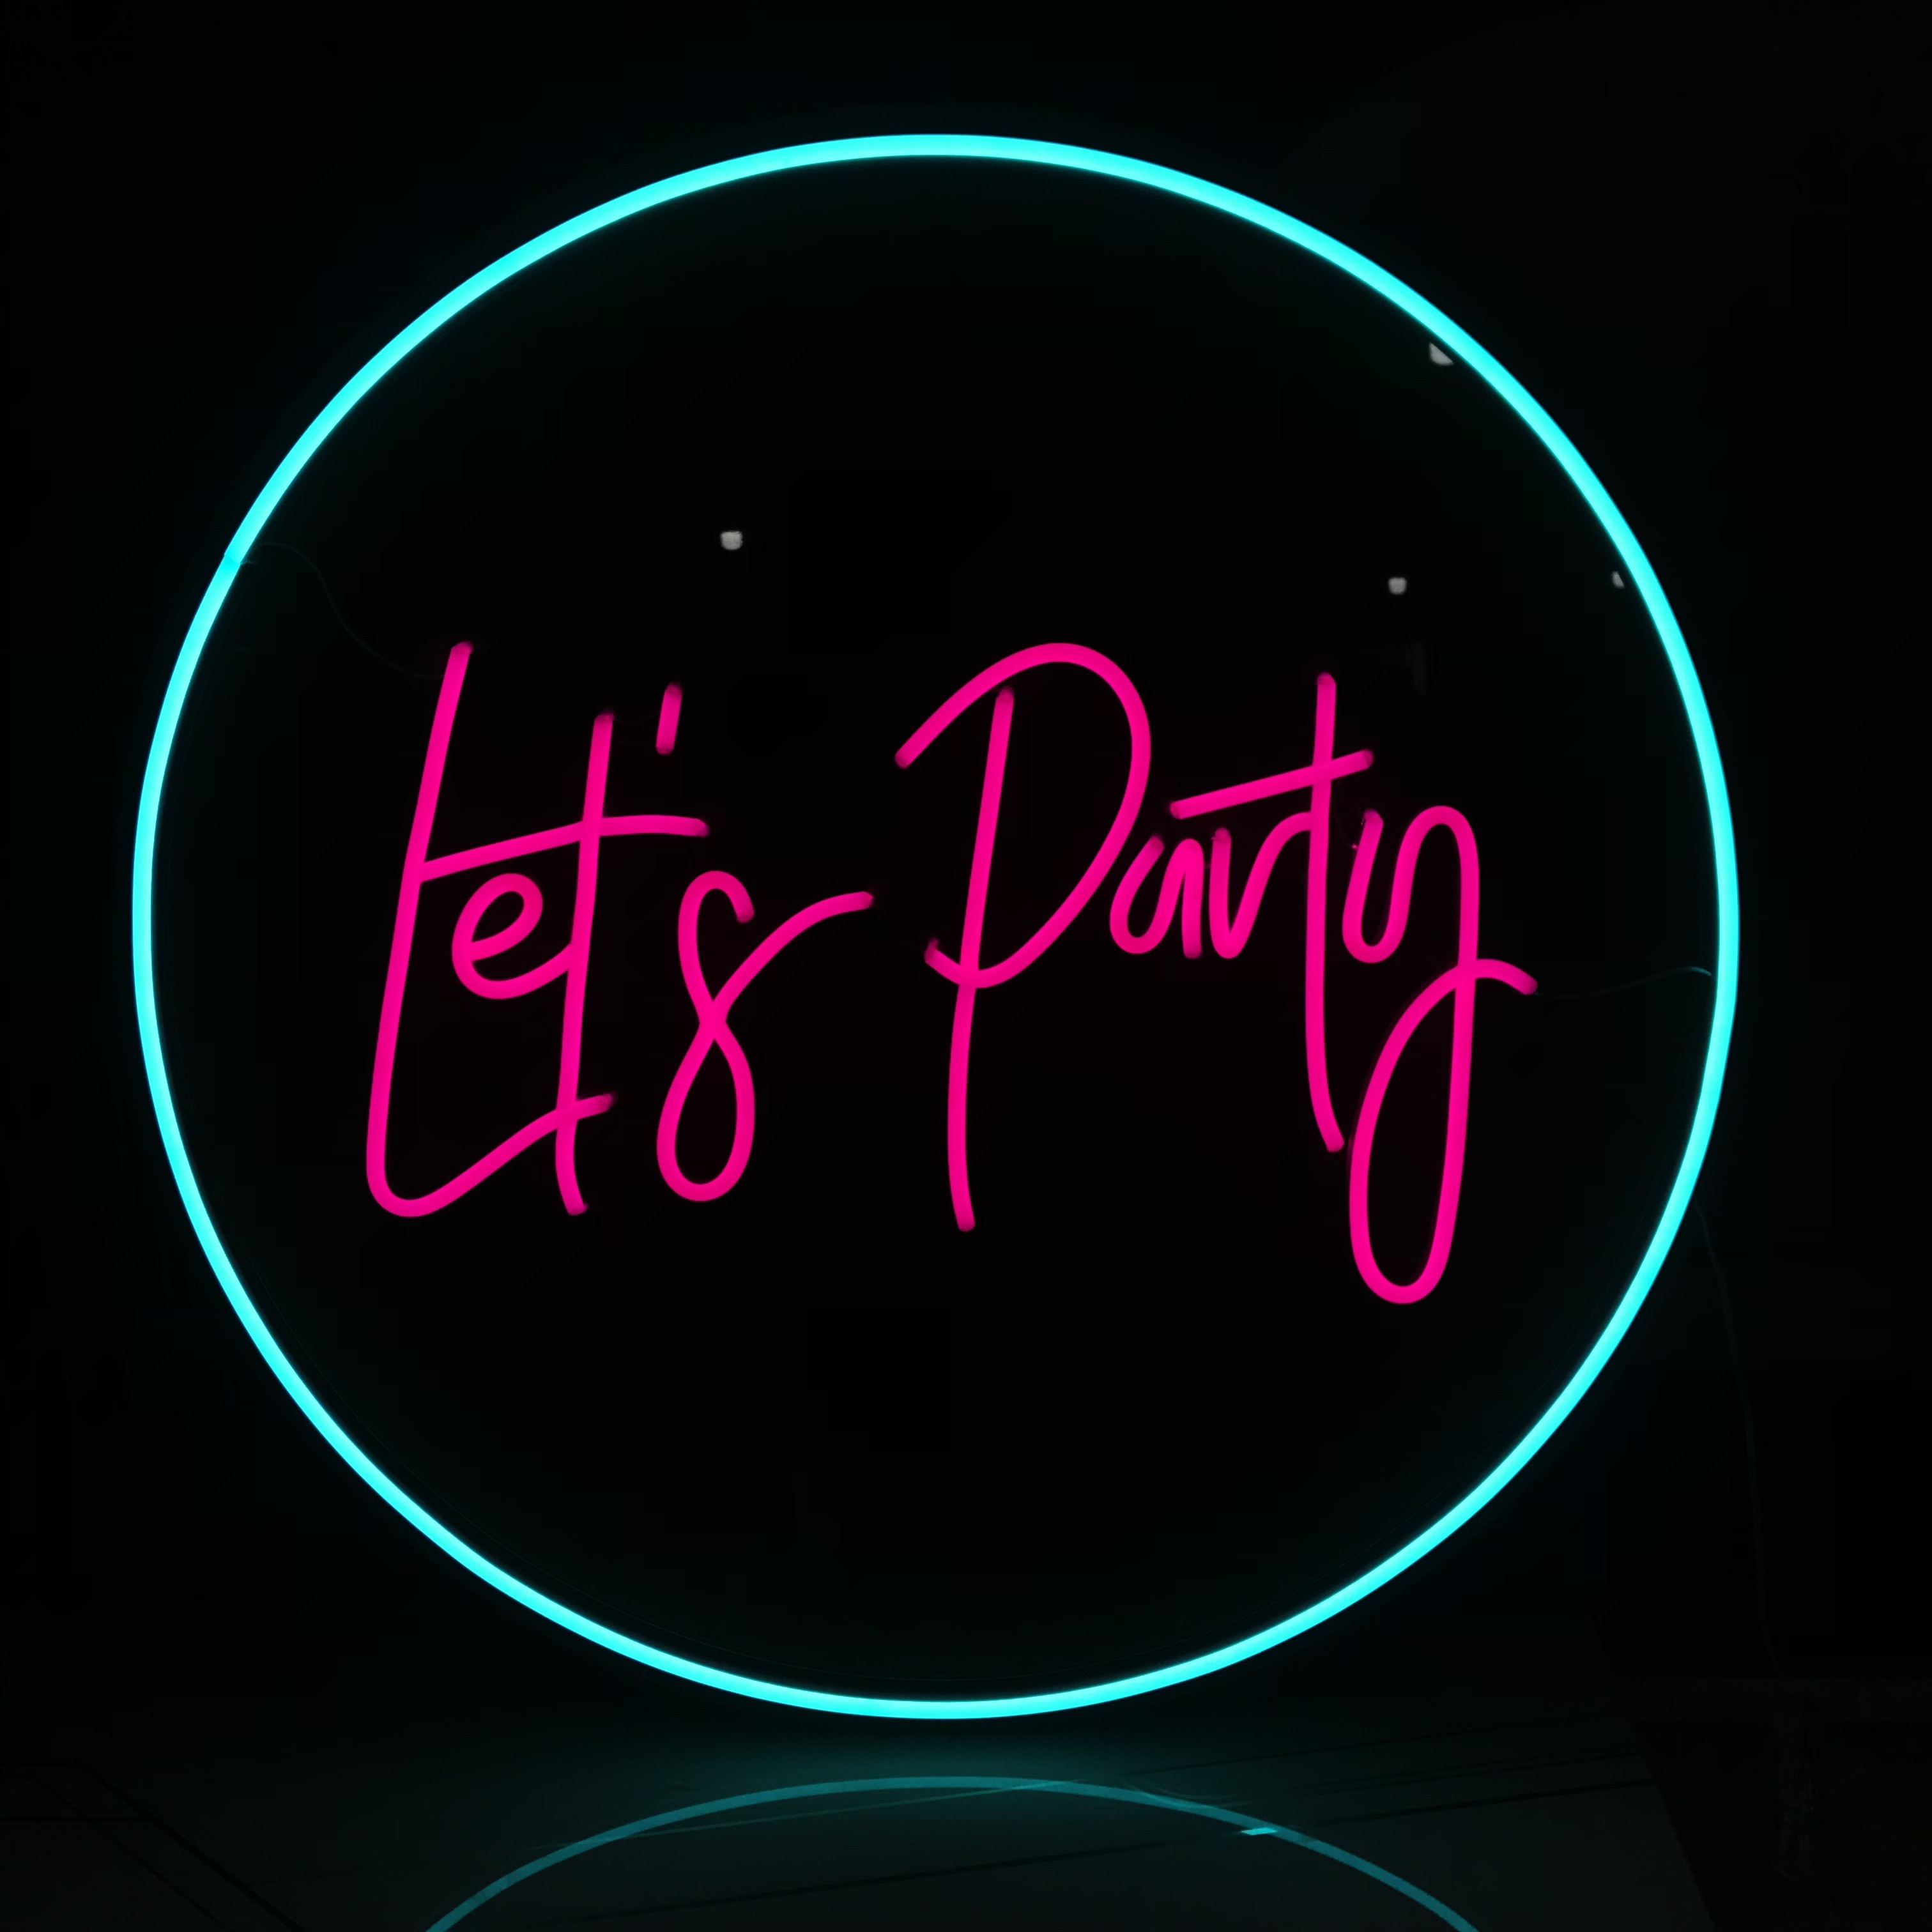 Let's Party Custom Neon Led Letters For Party Restaurant Wedding Bar Shop Birthday Decoration enlarge